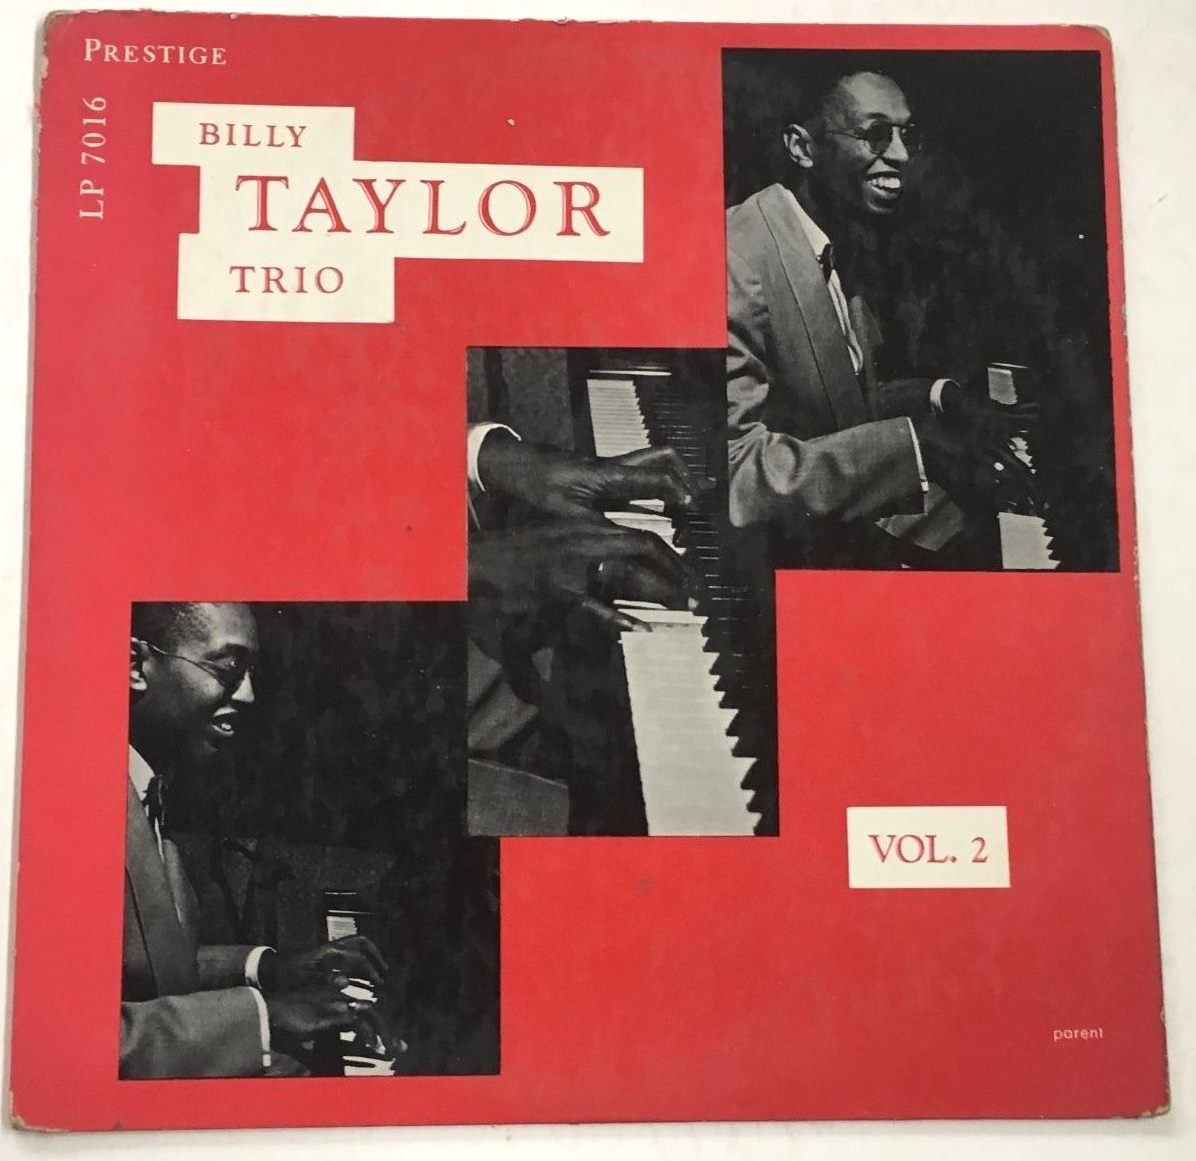 billy taylor vol. 2 7016 alt